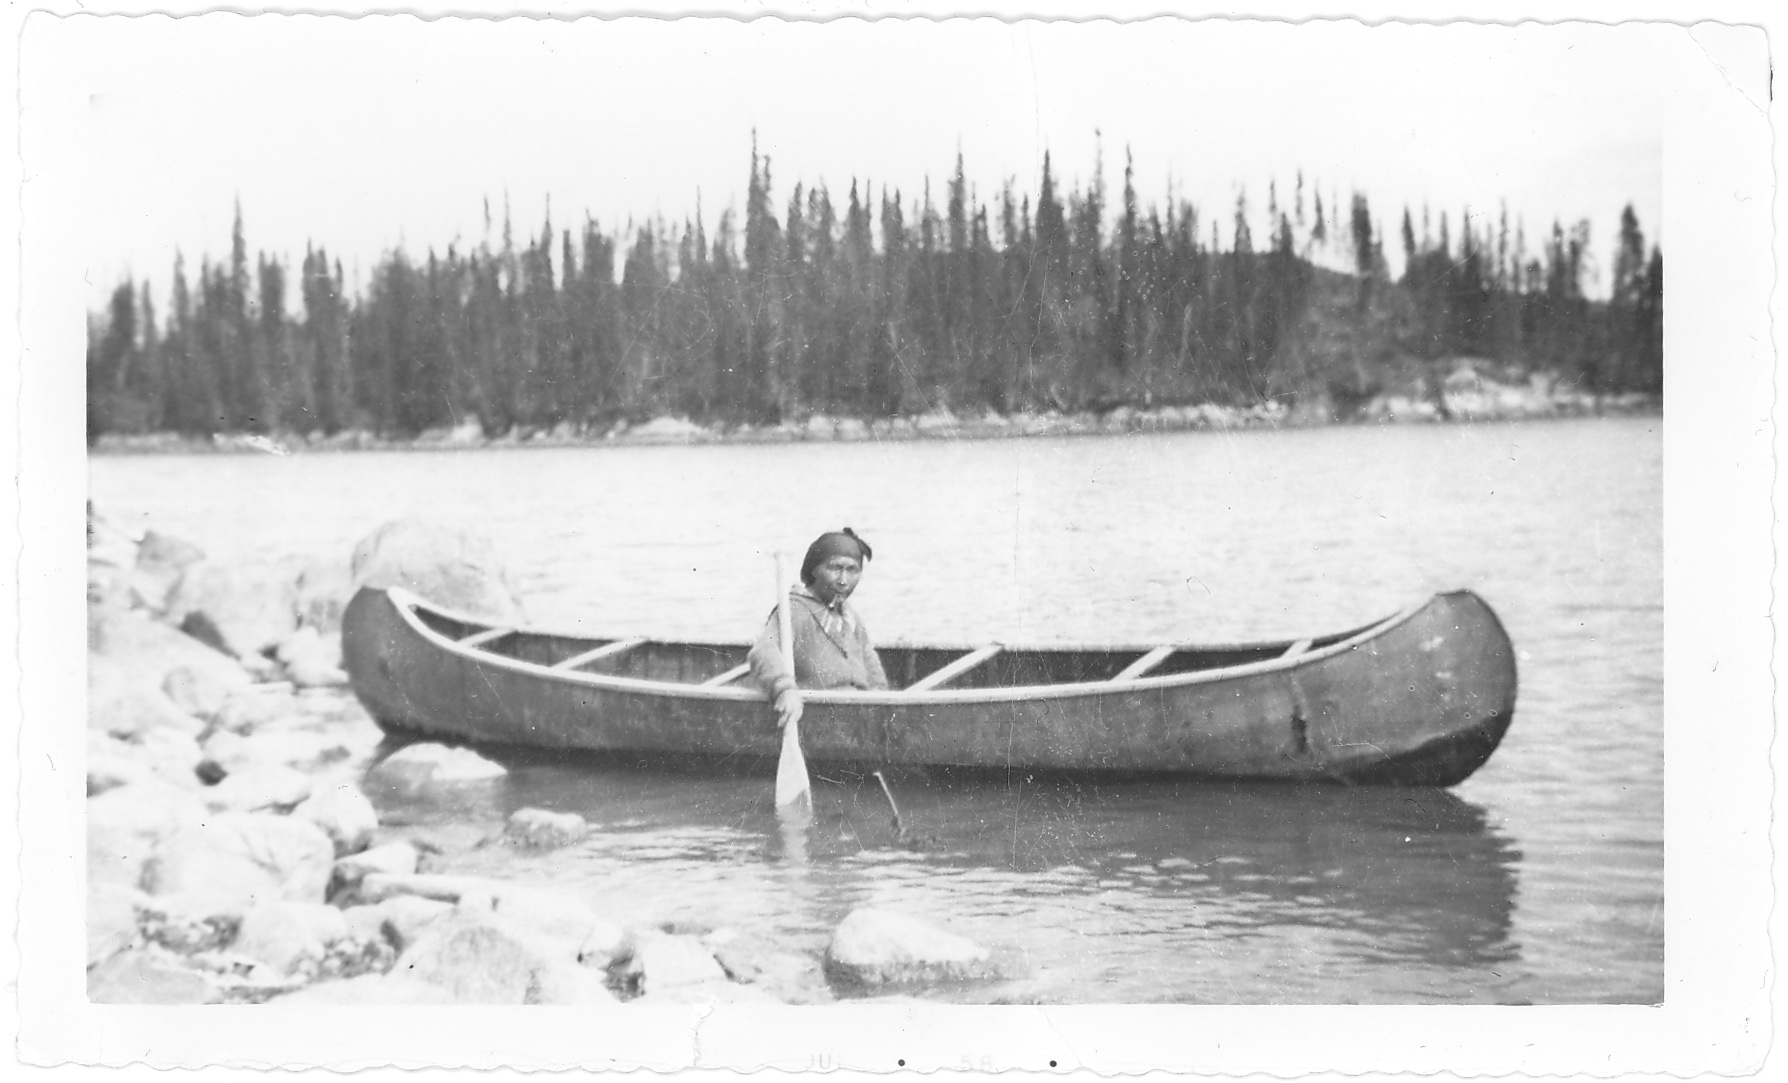 HBC Heritage — The Canoe